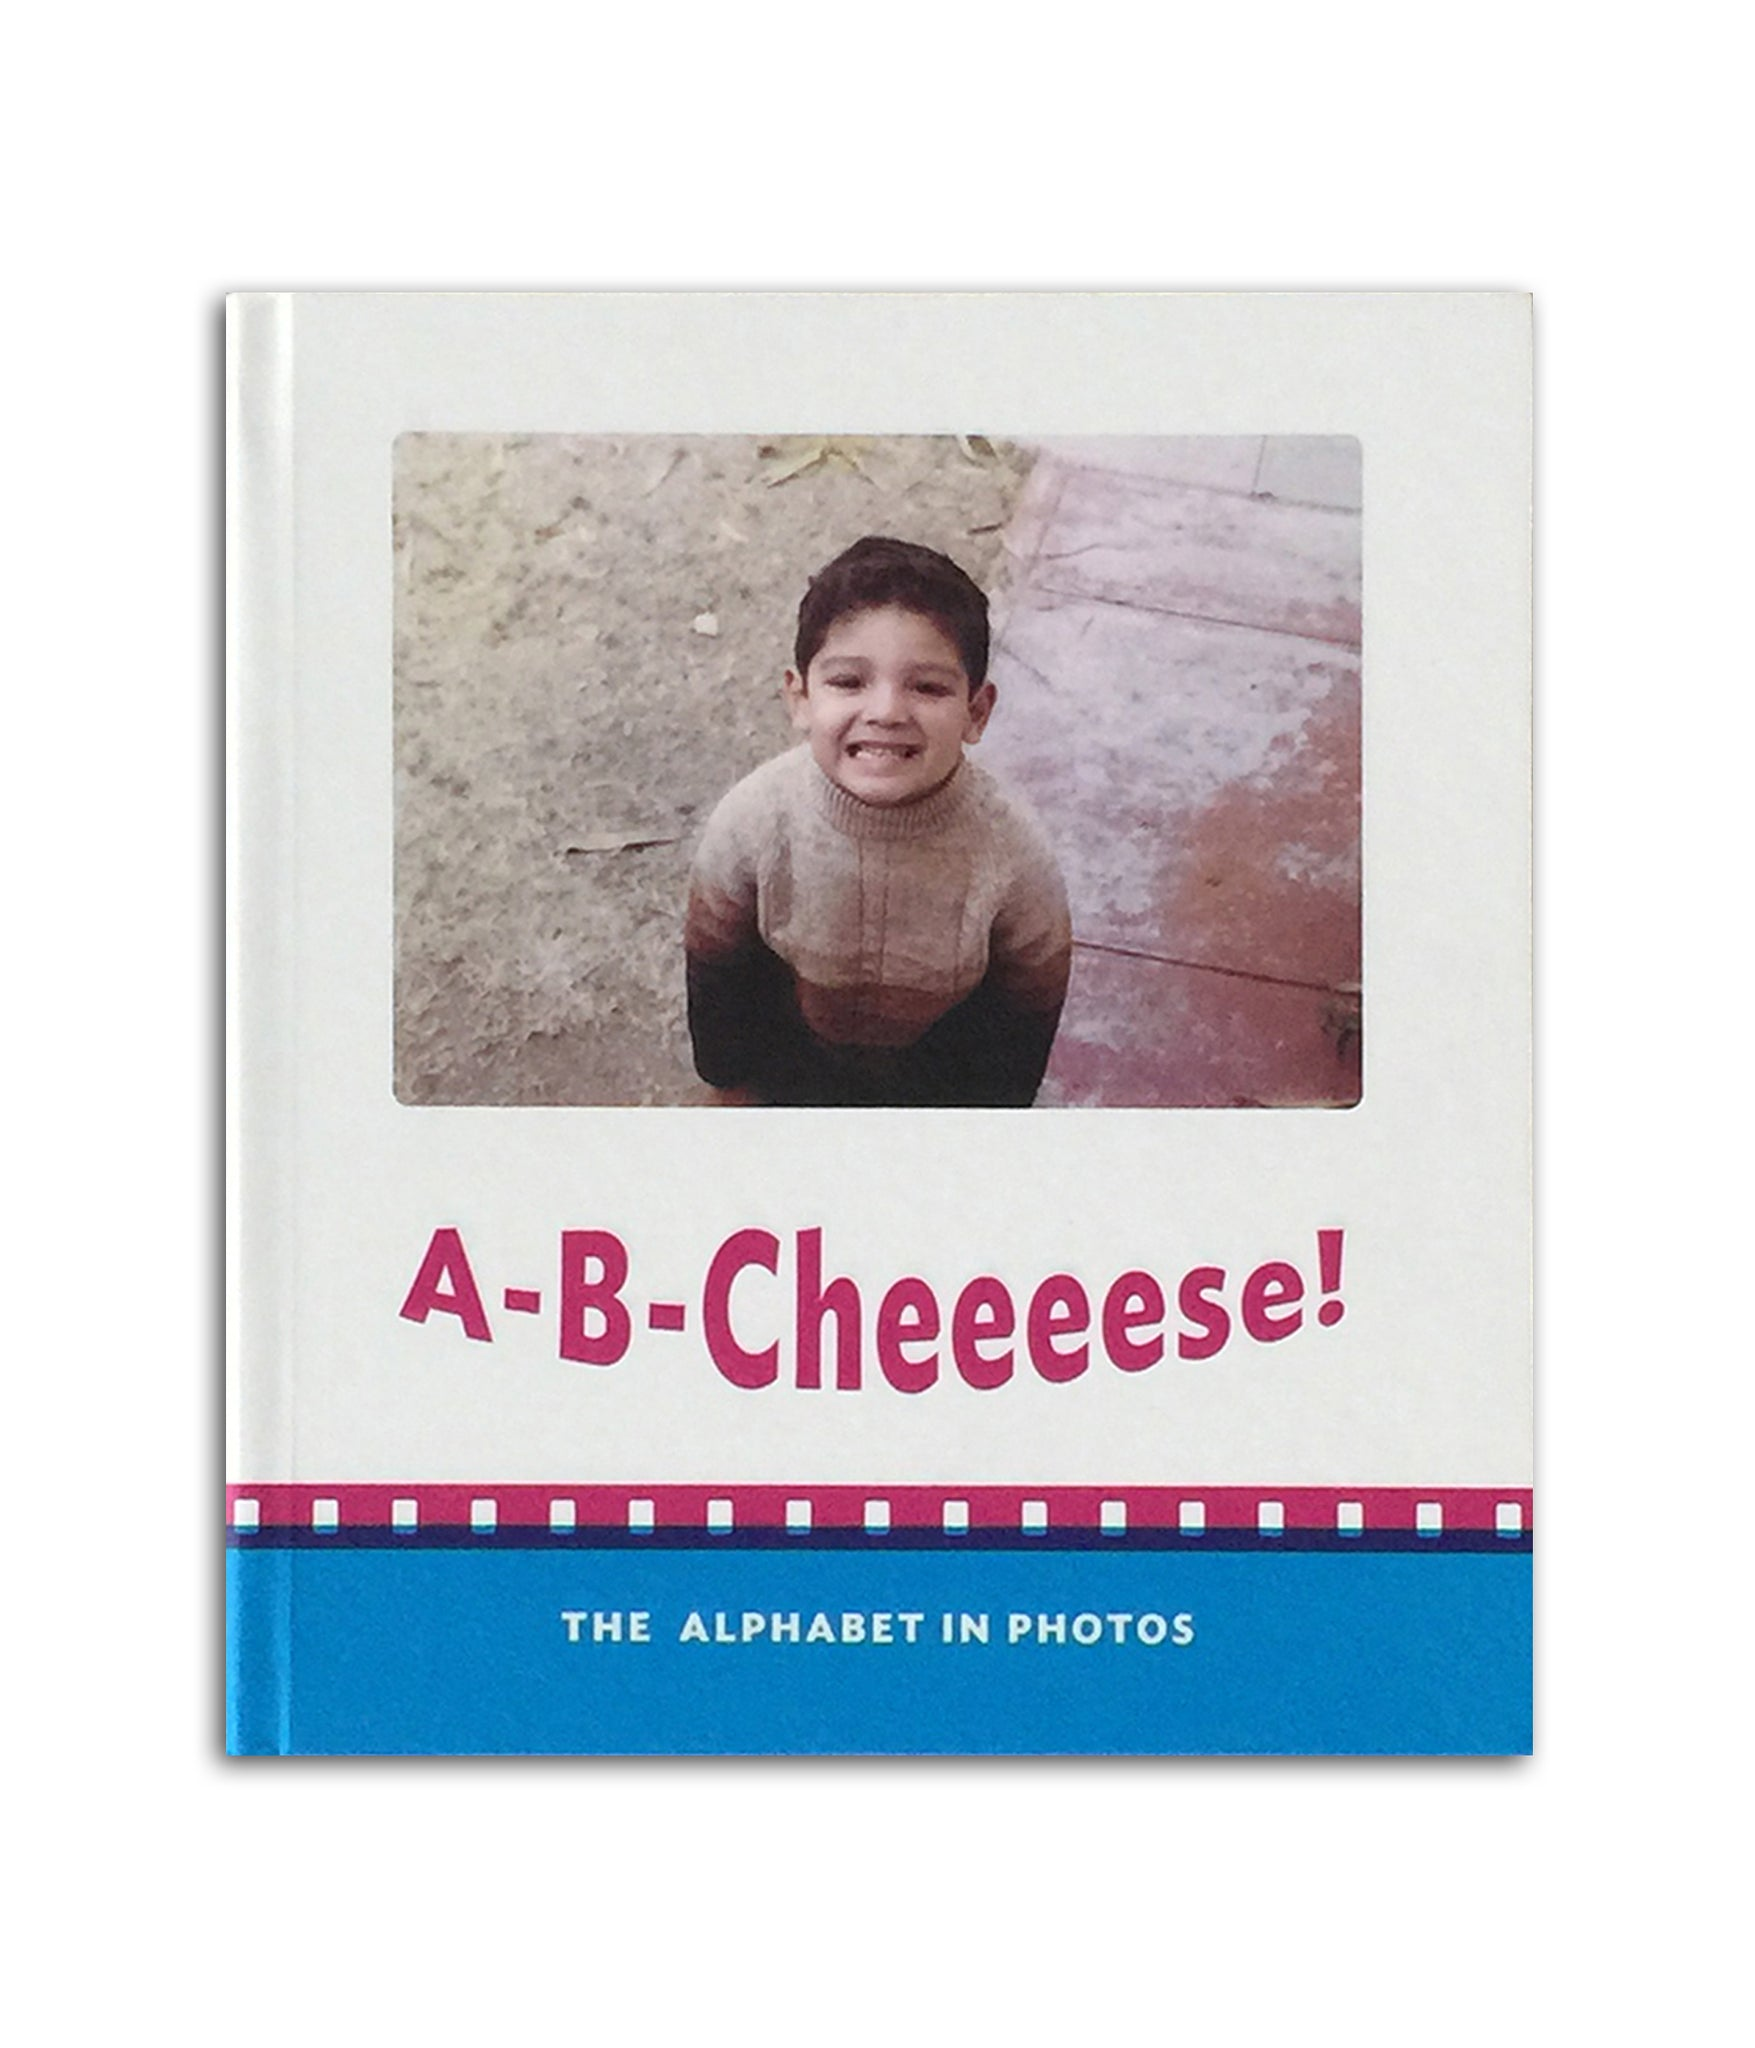 A-B-Cheeeese!